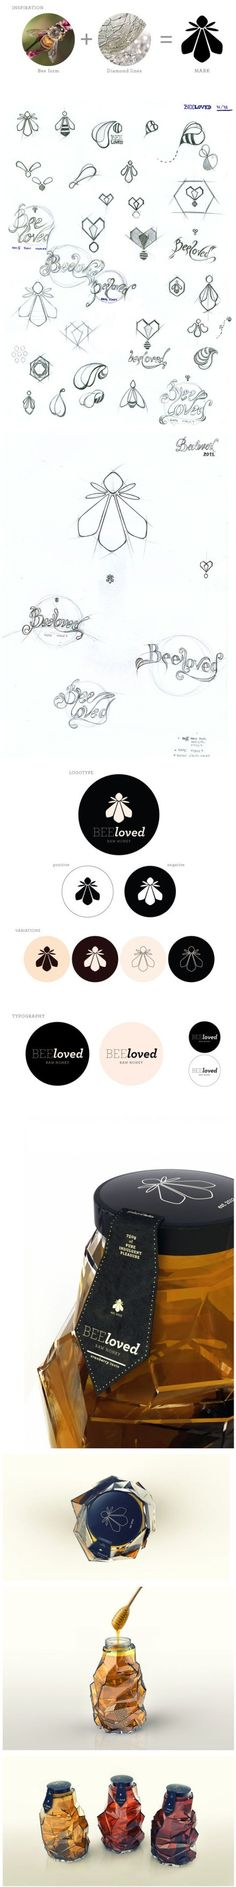 Process/Development of Beeloved / honey / logo / identity / branding / sketches / design / packaging / sketch - Graphic Templates Search Engine 2 Logo, Logo Branding, Identity Branding, Corporate Identity, Visual Identity, Coperate Design, Cover Design, Packaging Design, Branding Design